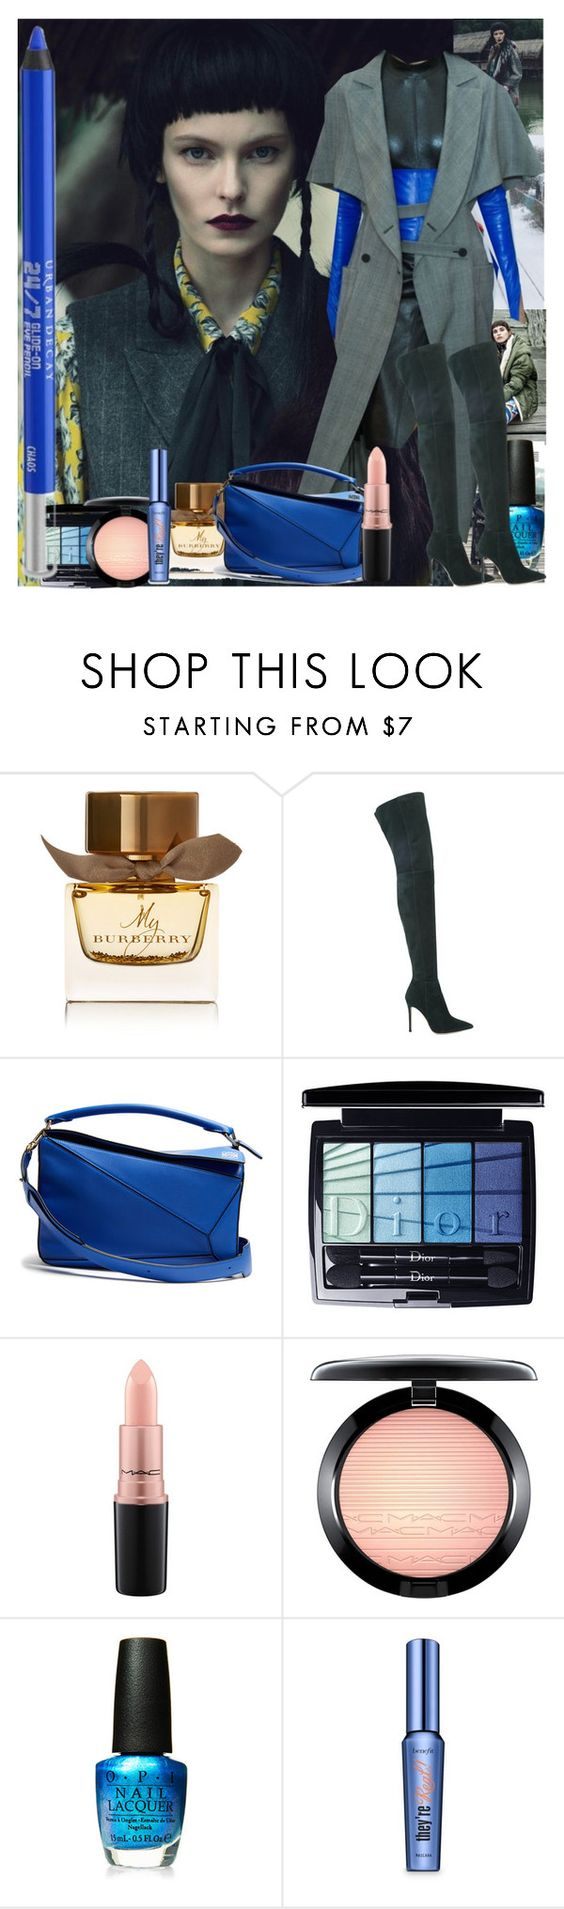 """""""Untitled 1561"""" by ceca-66 ❤ liked on Polyvore featuring Louis Vuitton, Burberry, Gianvito Rossi, Loewe, Christian Dior, MAC Cosmetics, OPI, Benefit and Urban Decay"""